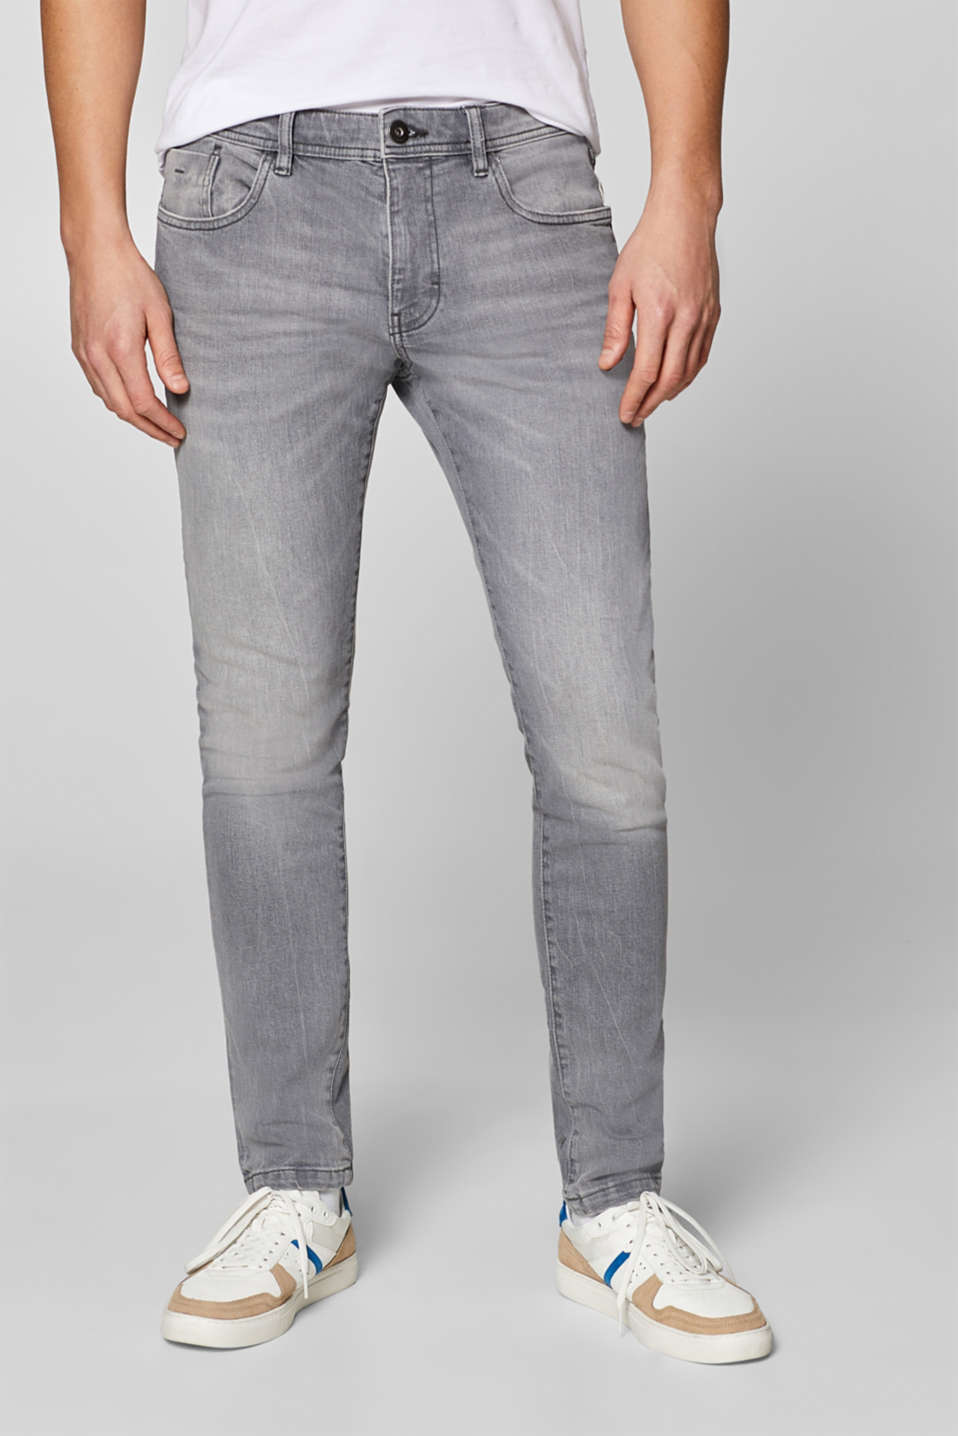 edc - Stretch jeans with wrinkled effect